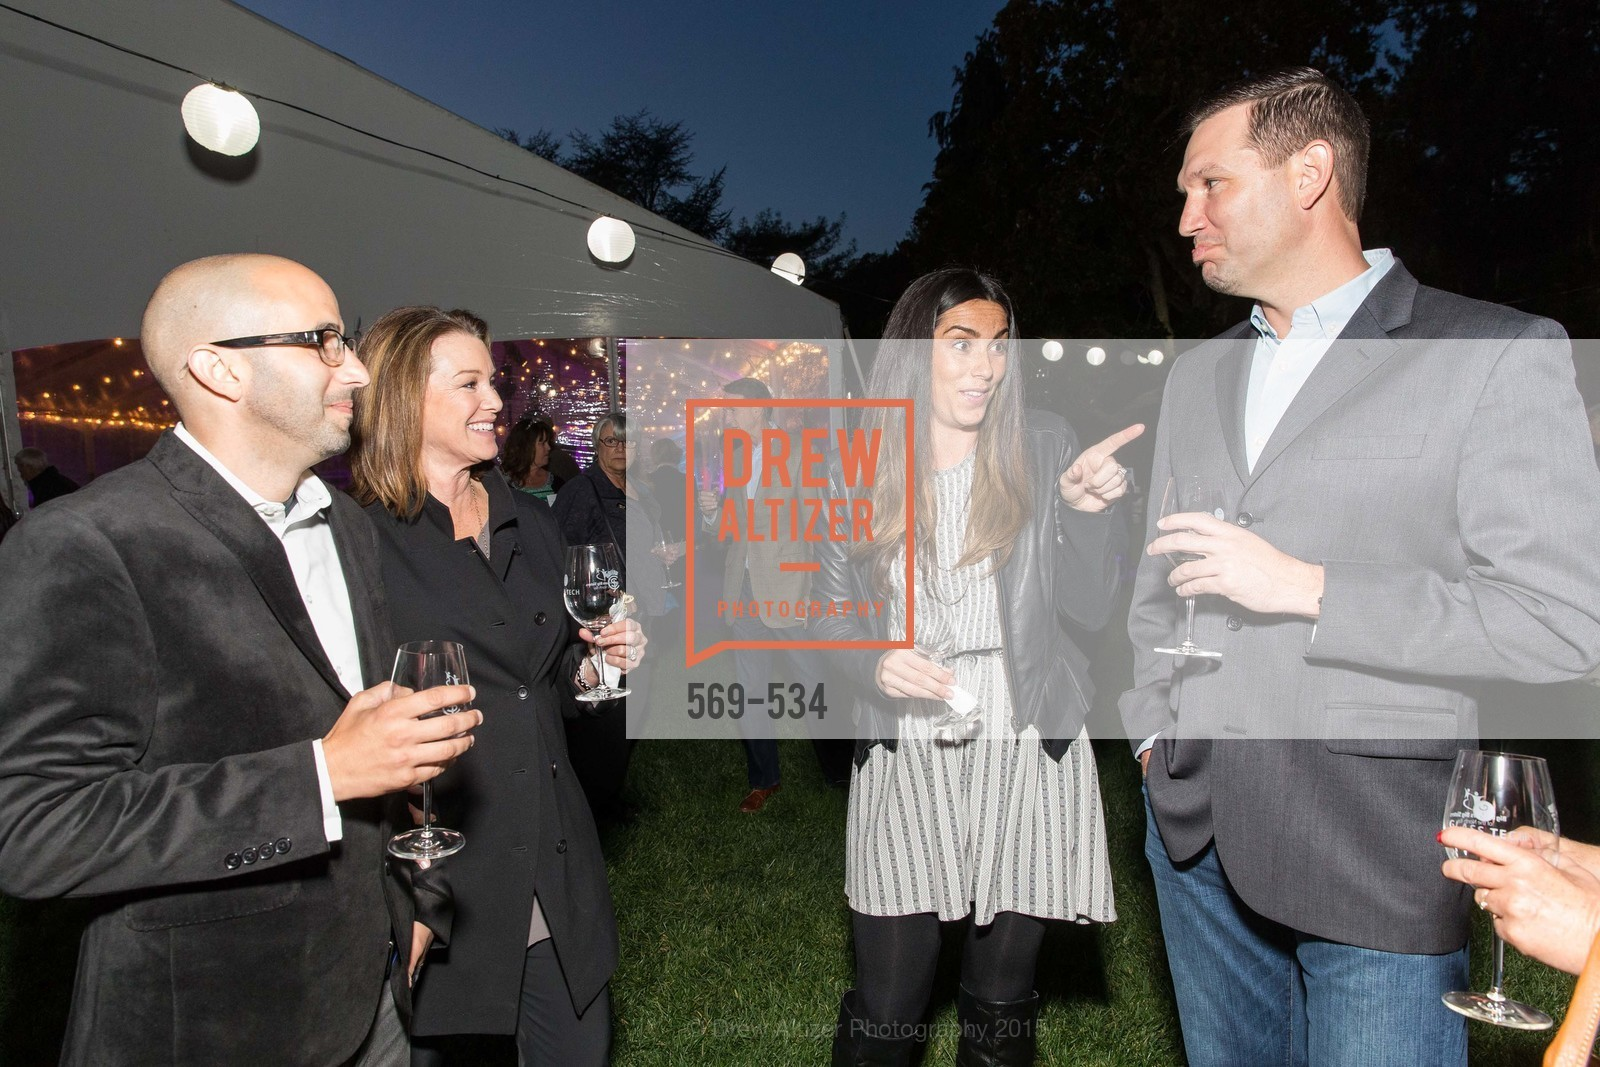 Extras, Perfecting Pairings - Food, Wine and Stories, November 14th, 2015, Photo,Drew Altizer, Drew Altizer Photography, full-service agency, private events, San Francisco photographer, photographer california